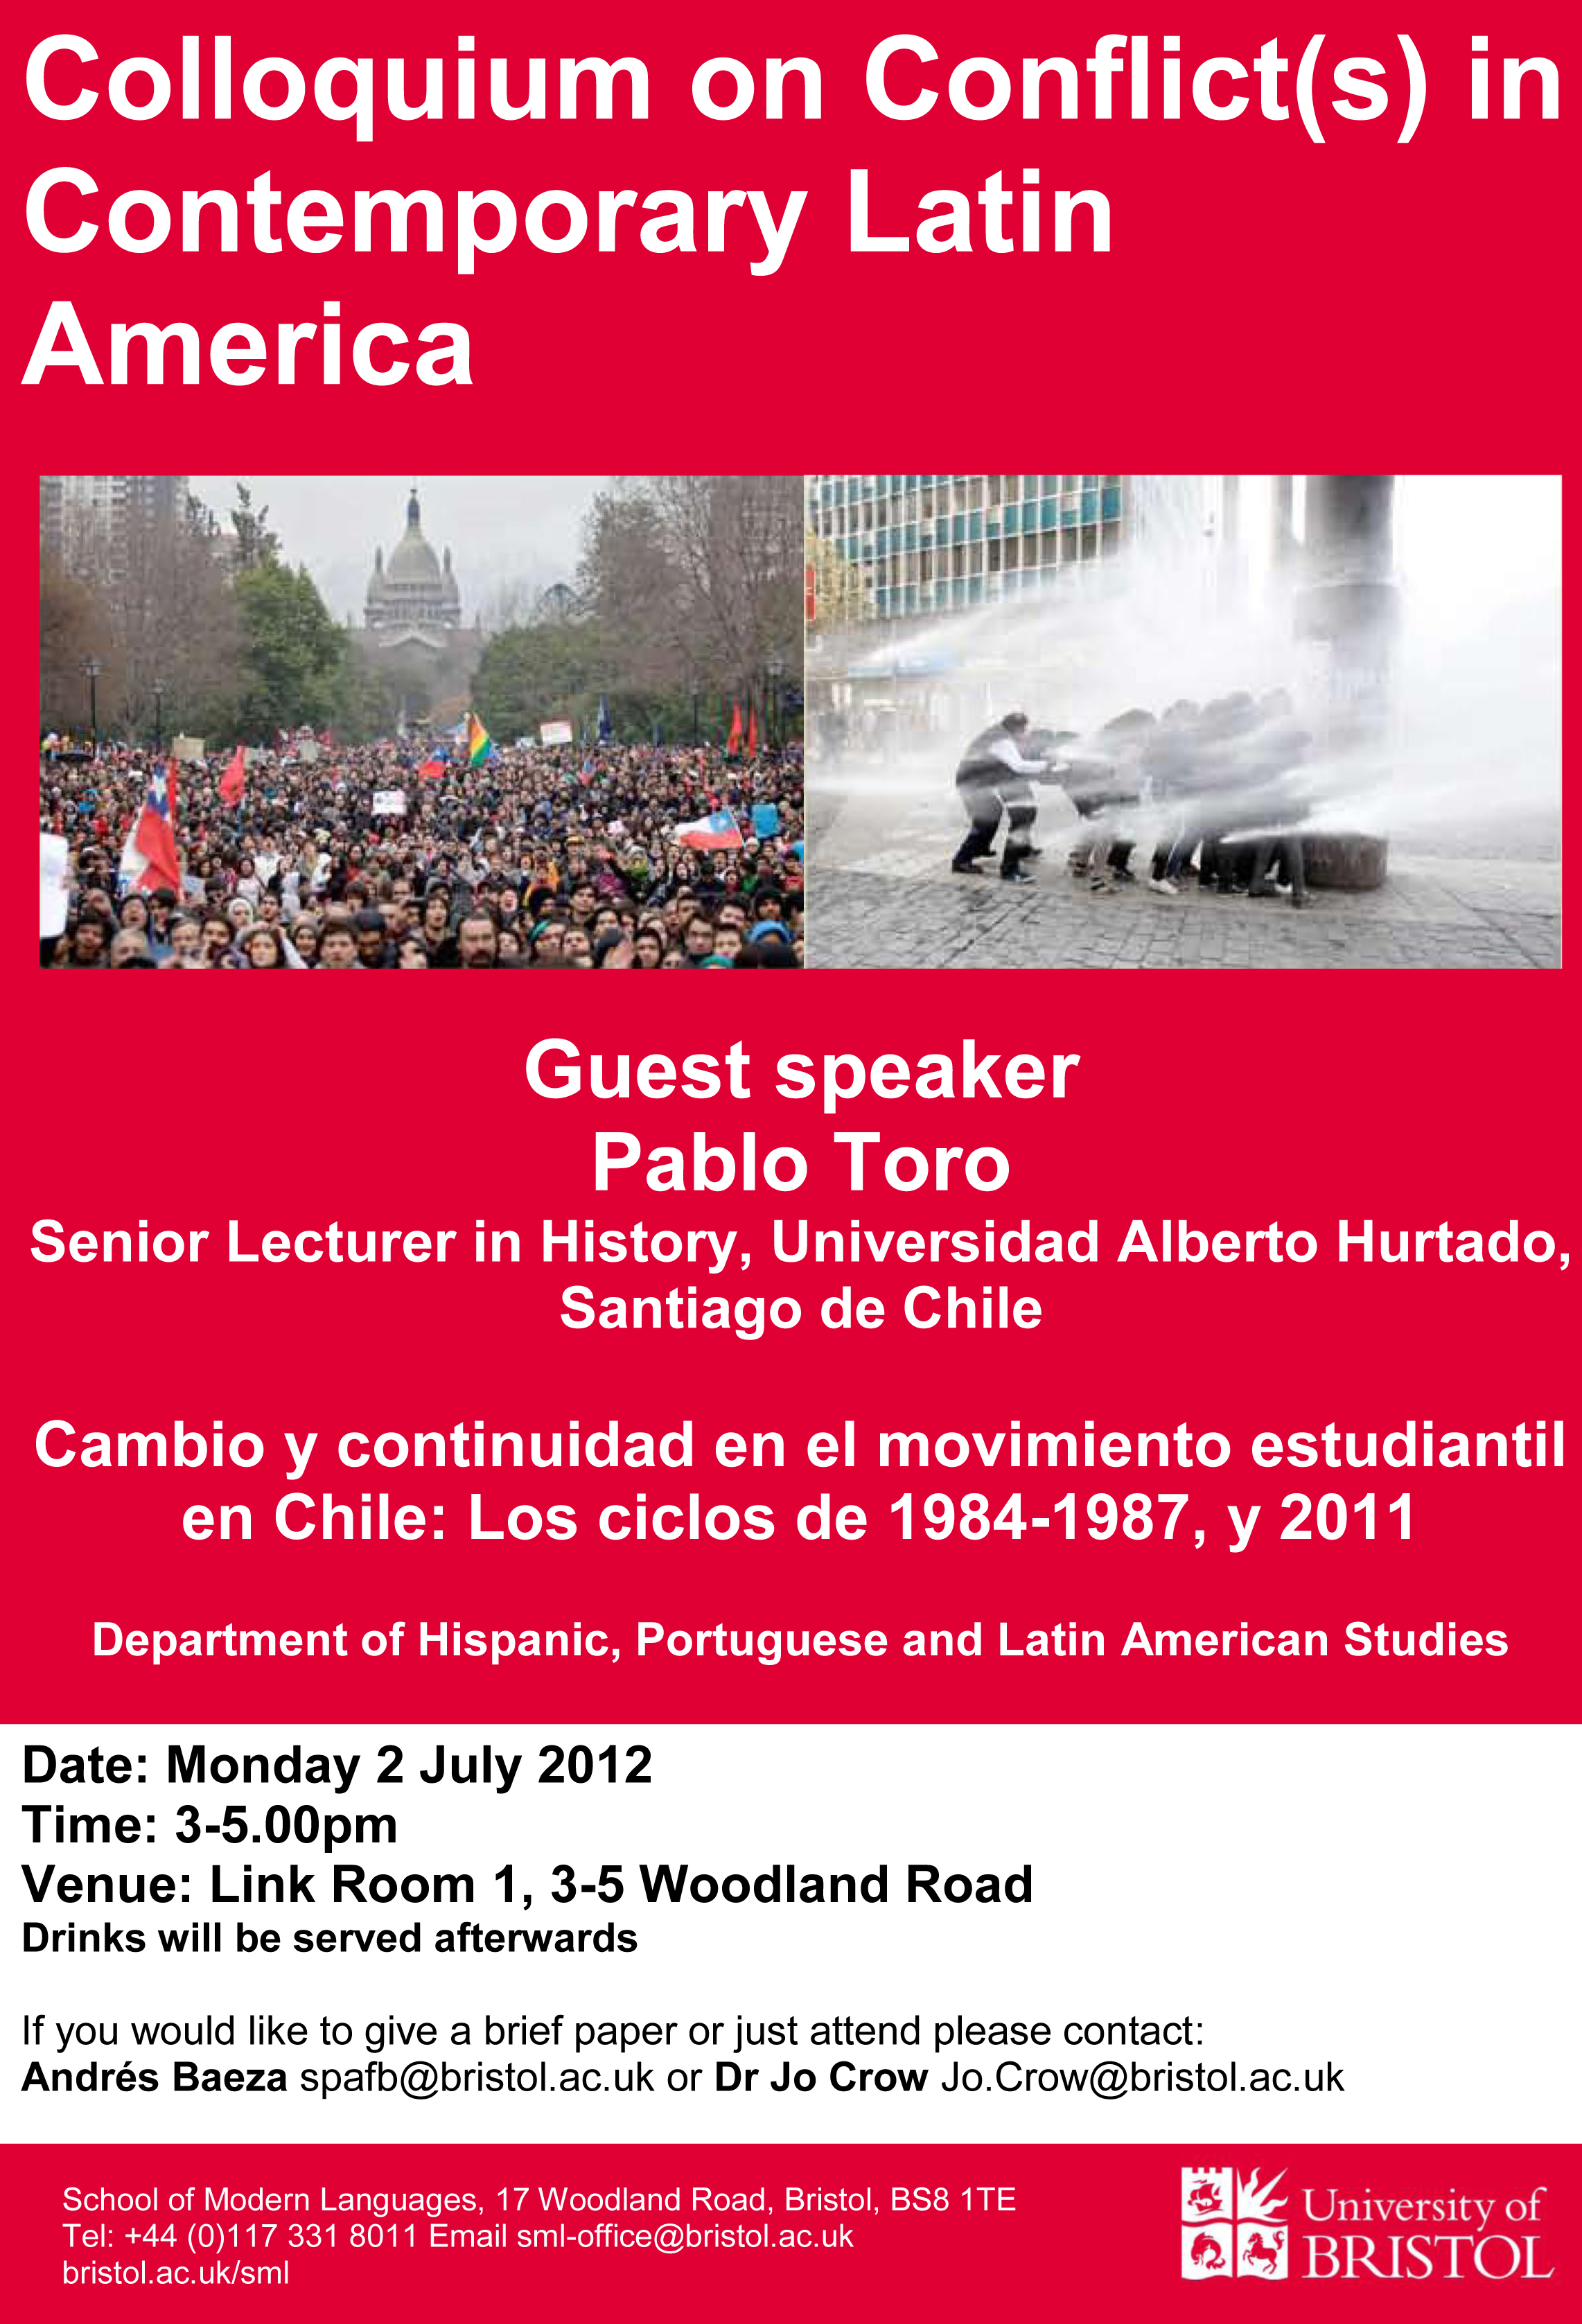 Colloquium on Conflict(s) in Contemporary Latin America